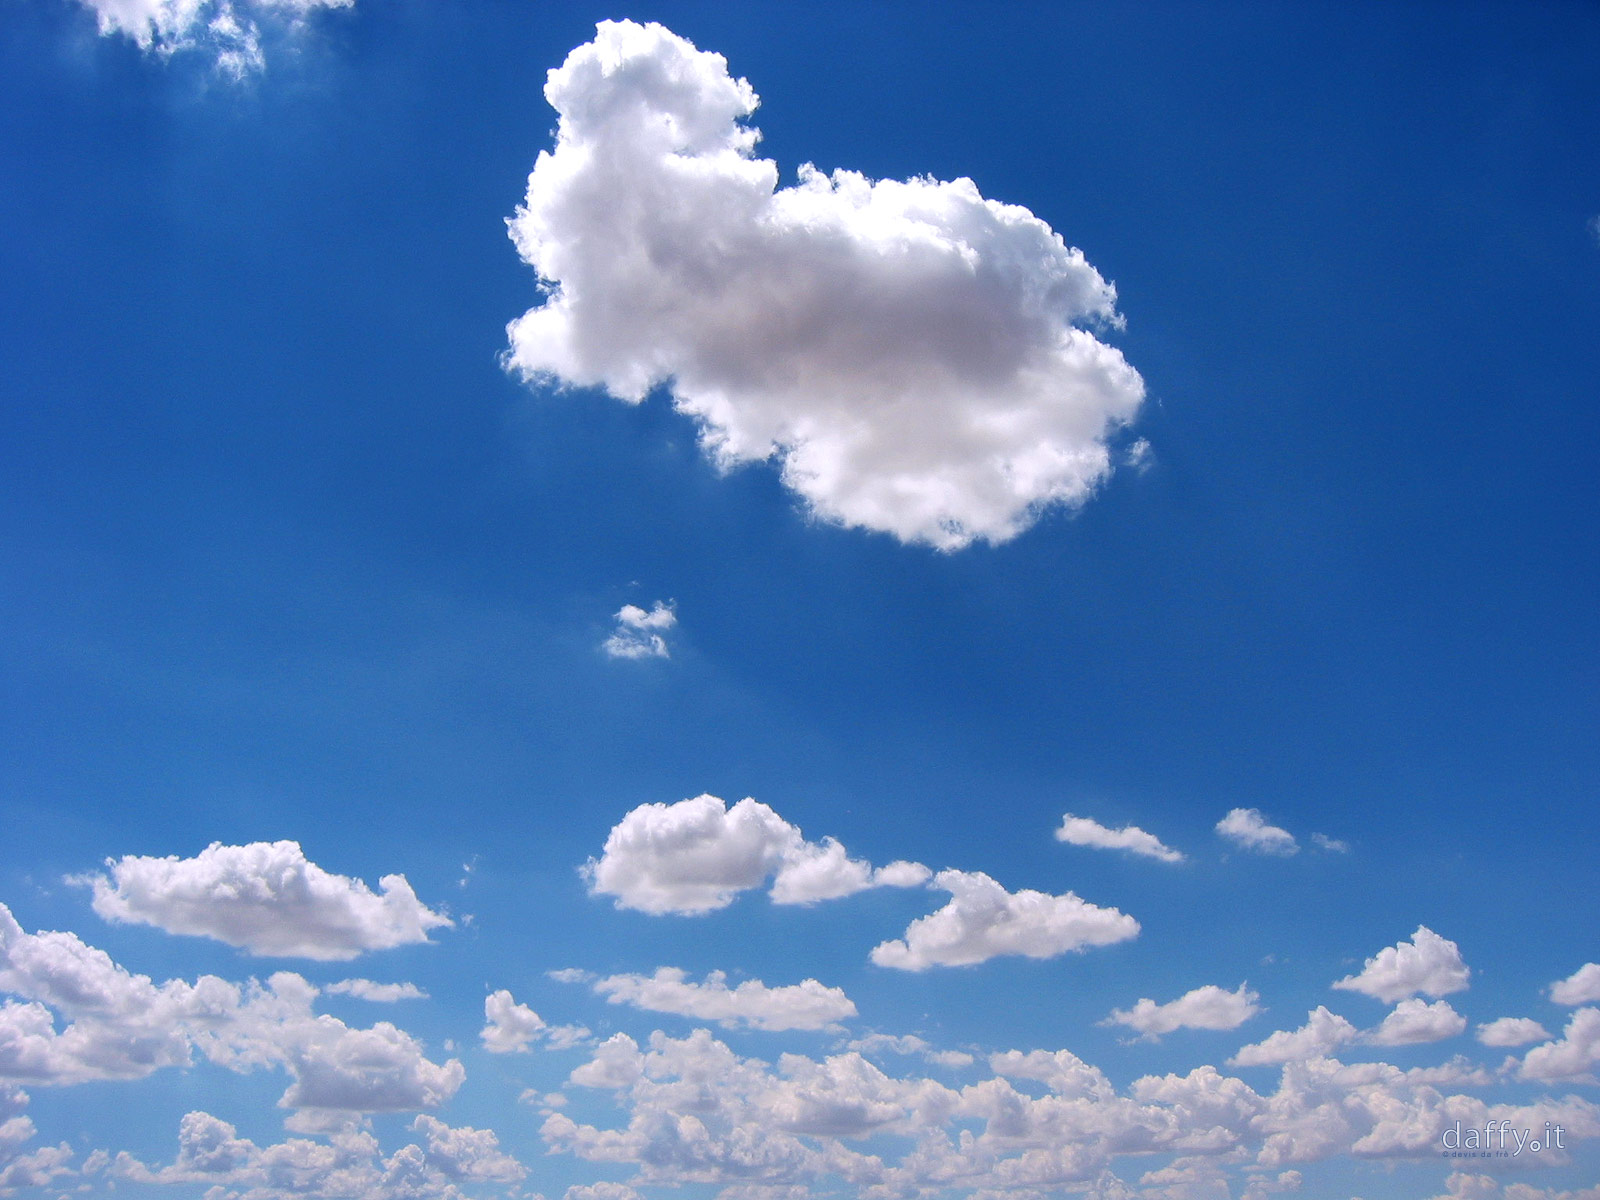 Cloudera apre la strada del Data Warehousing al cloud ibrido